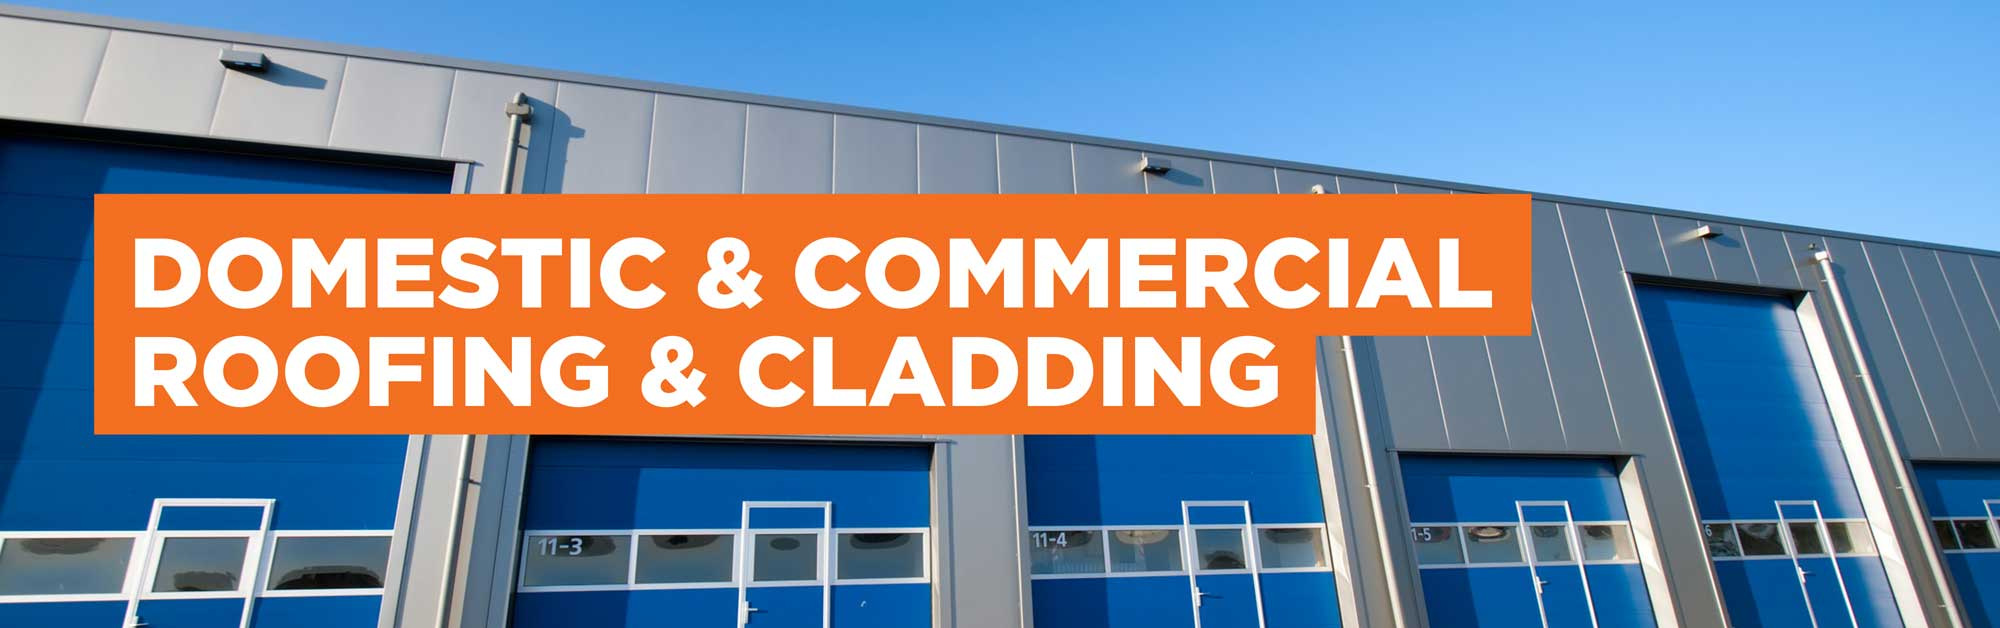 Domestic & Commercial Roofing & Cladding